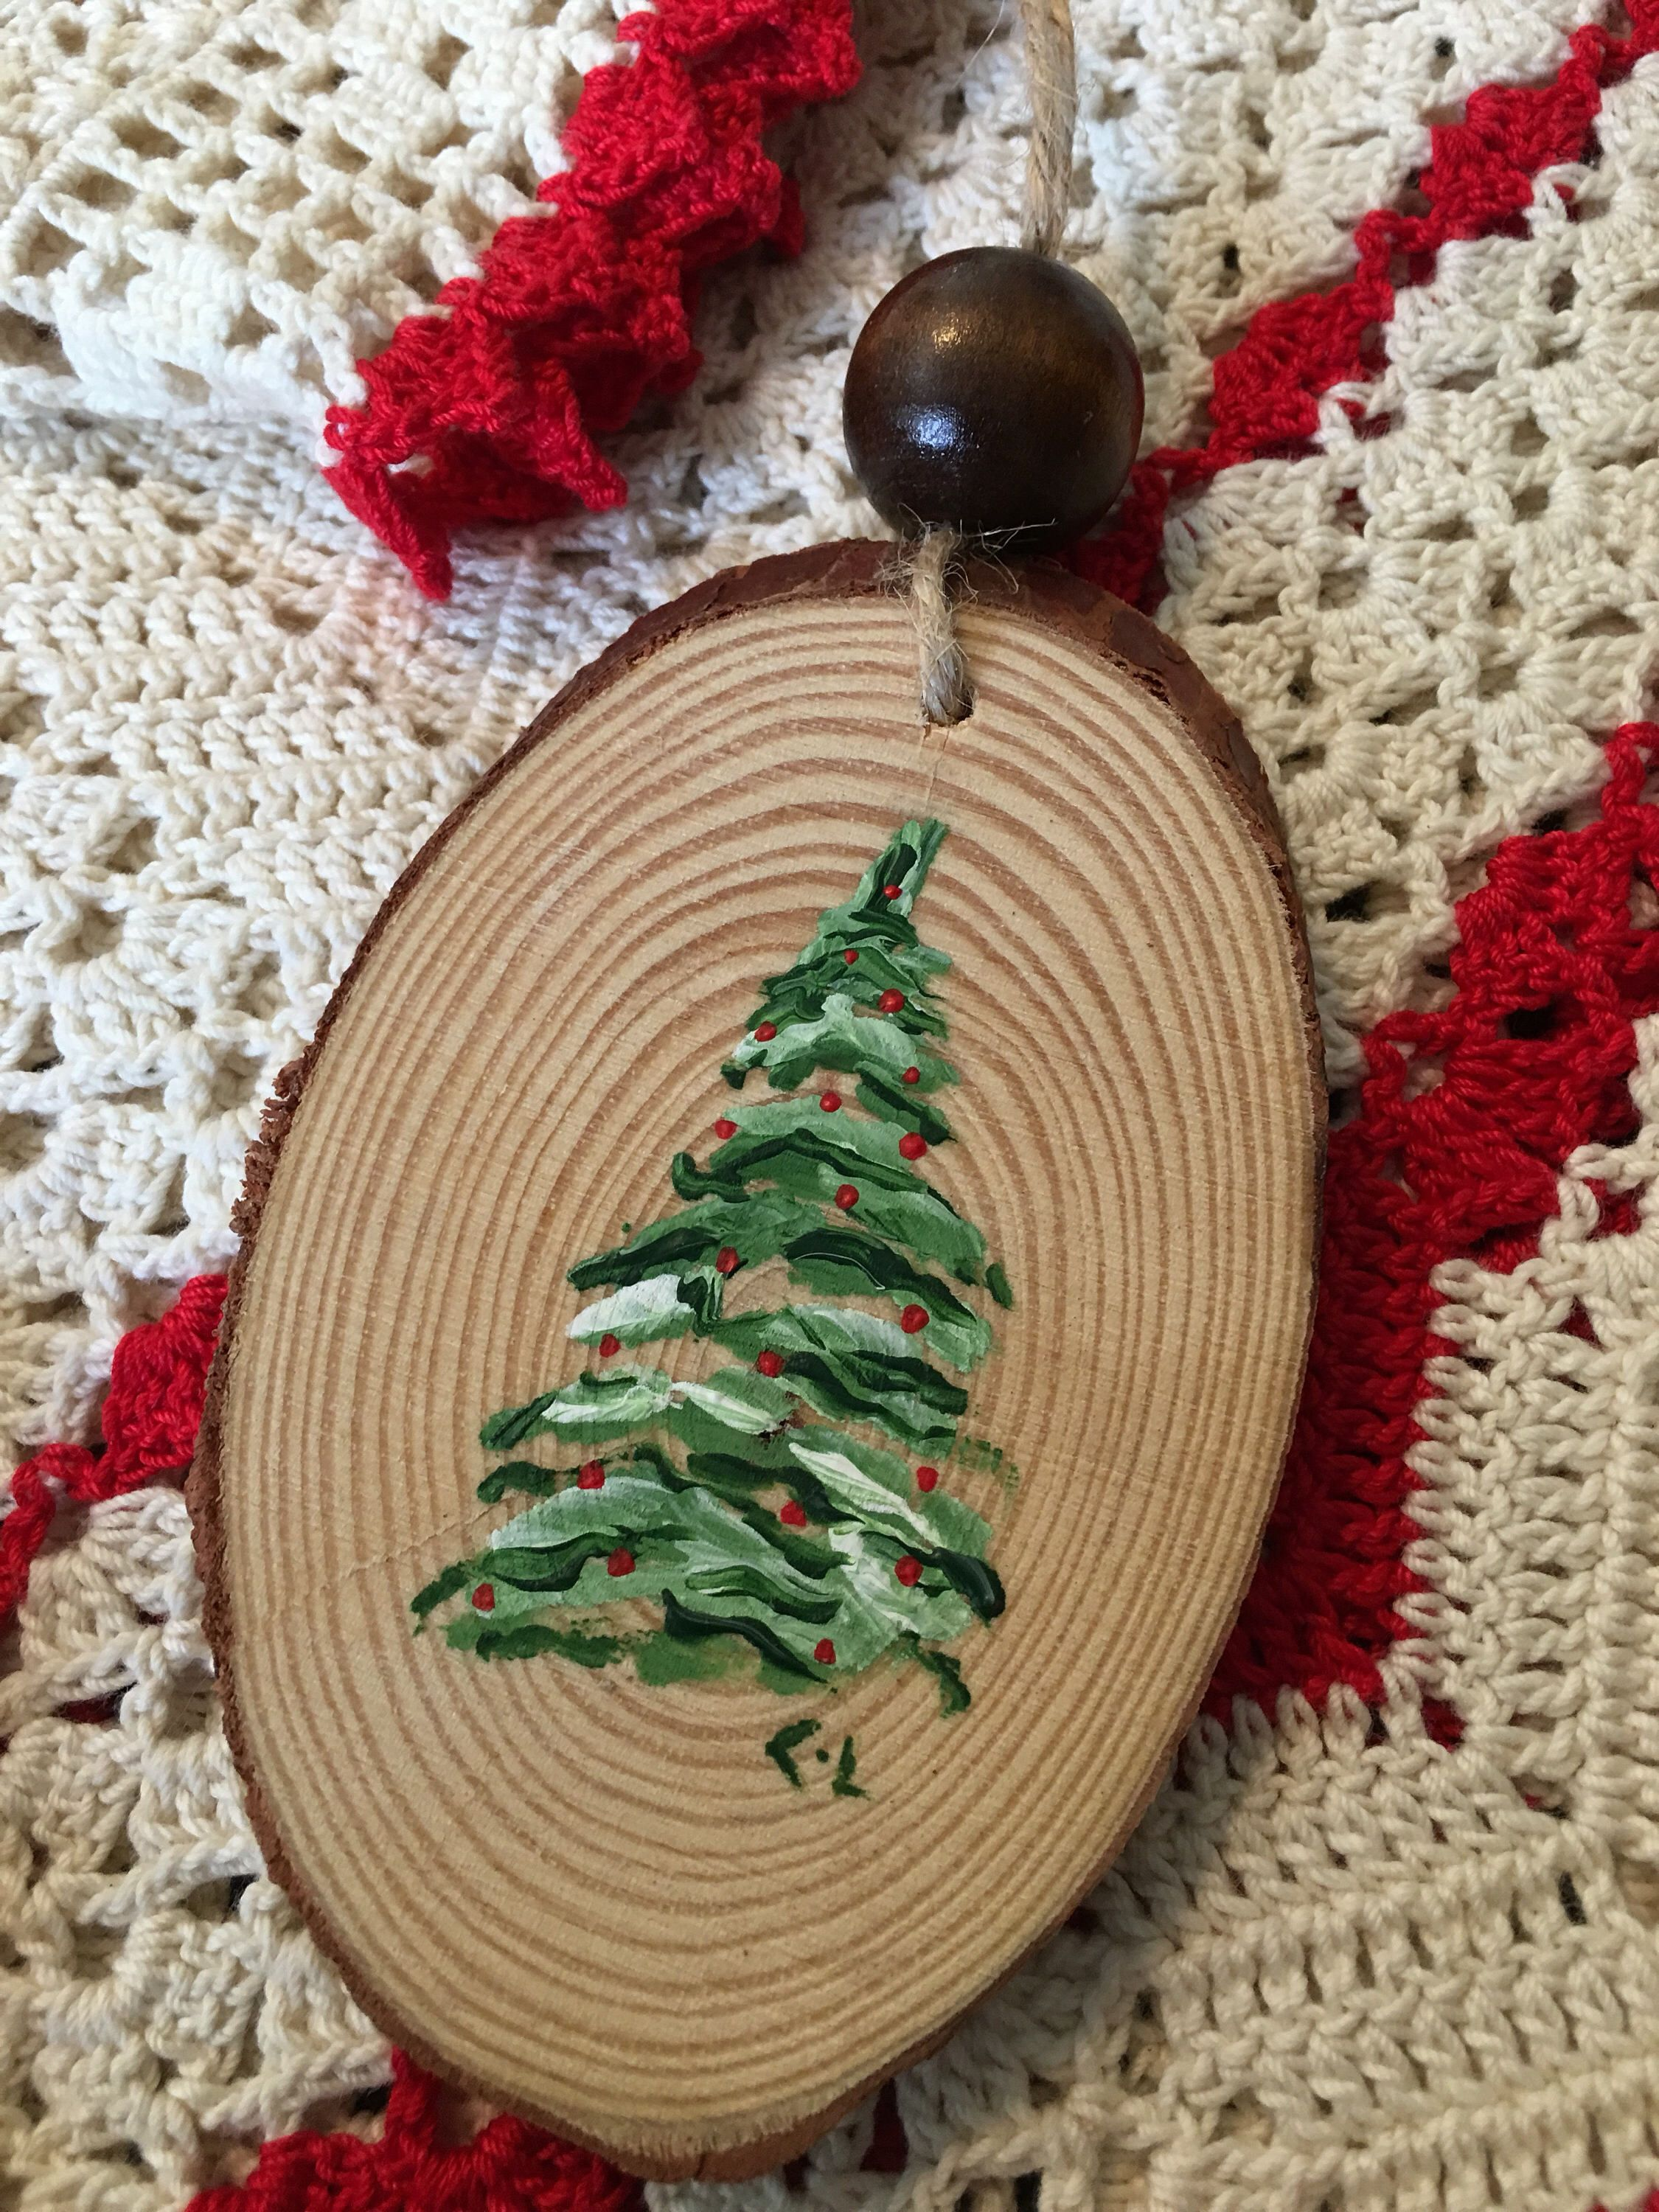 Christmas Ornament Hand Painted Wood Slice Christmas Tree Decoration Holiday Decor Winter Holiday Lamp Pull Rustic Decor Cerenalevene Christmas Tree Painting Christmas Ornament Crafts Christmas Ornaments To Make